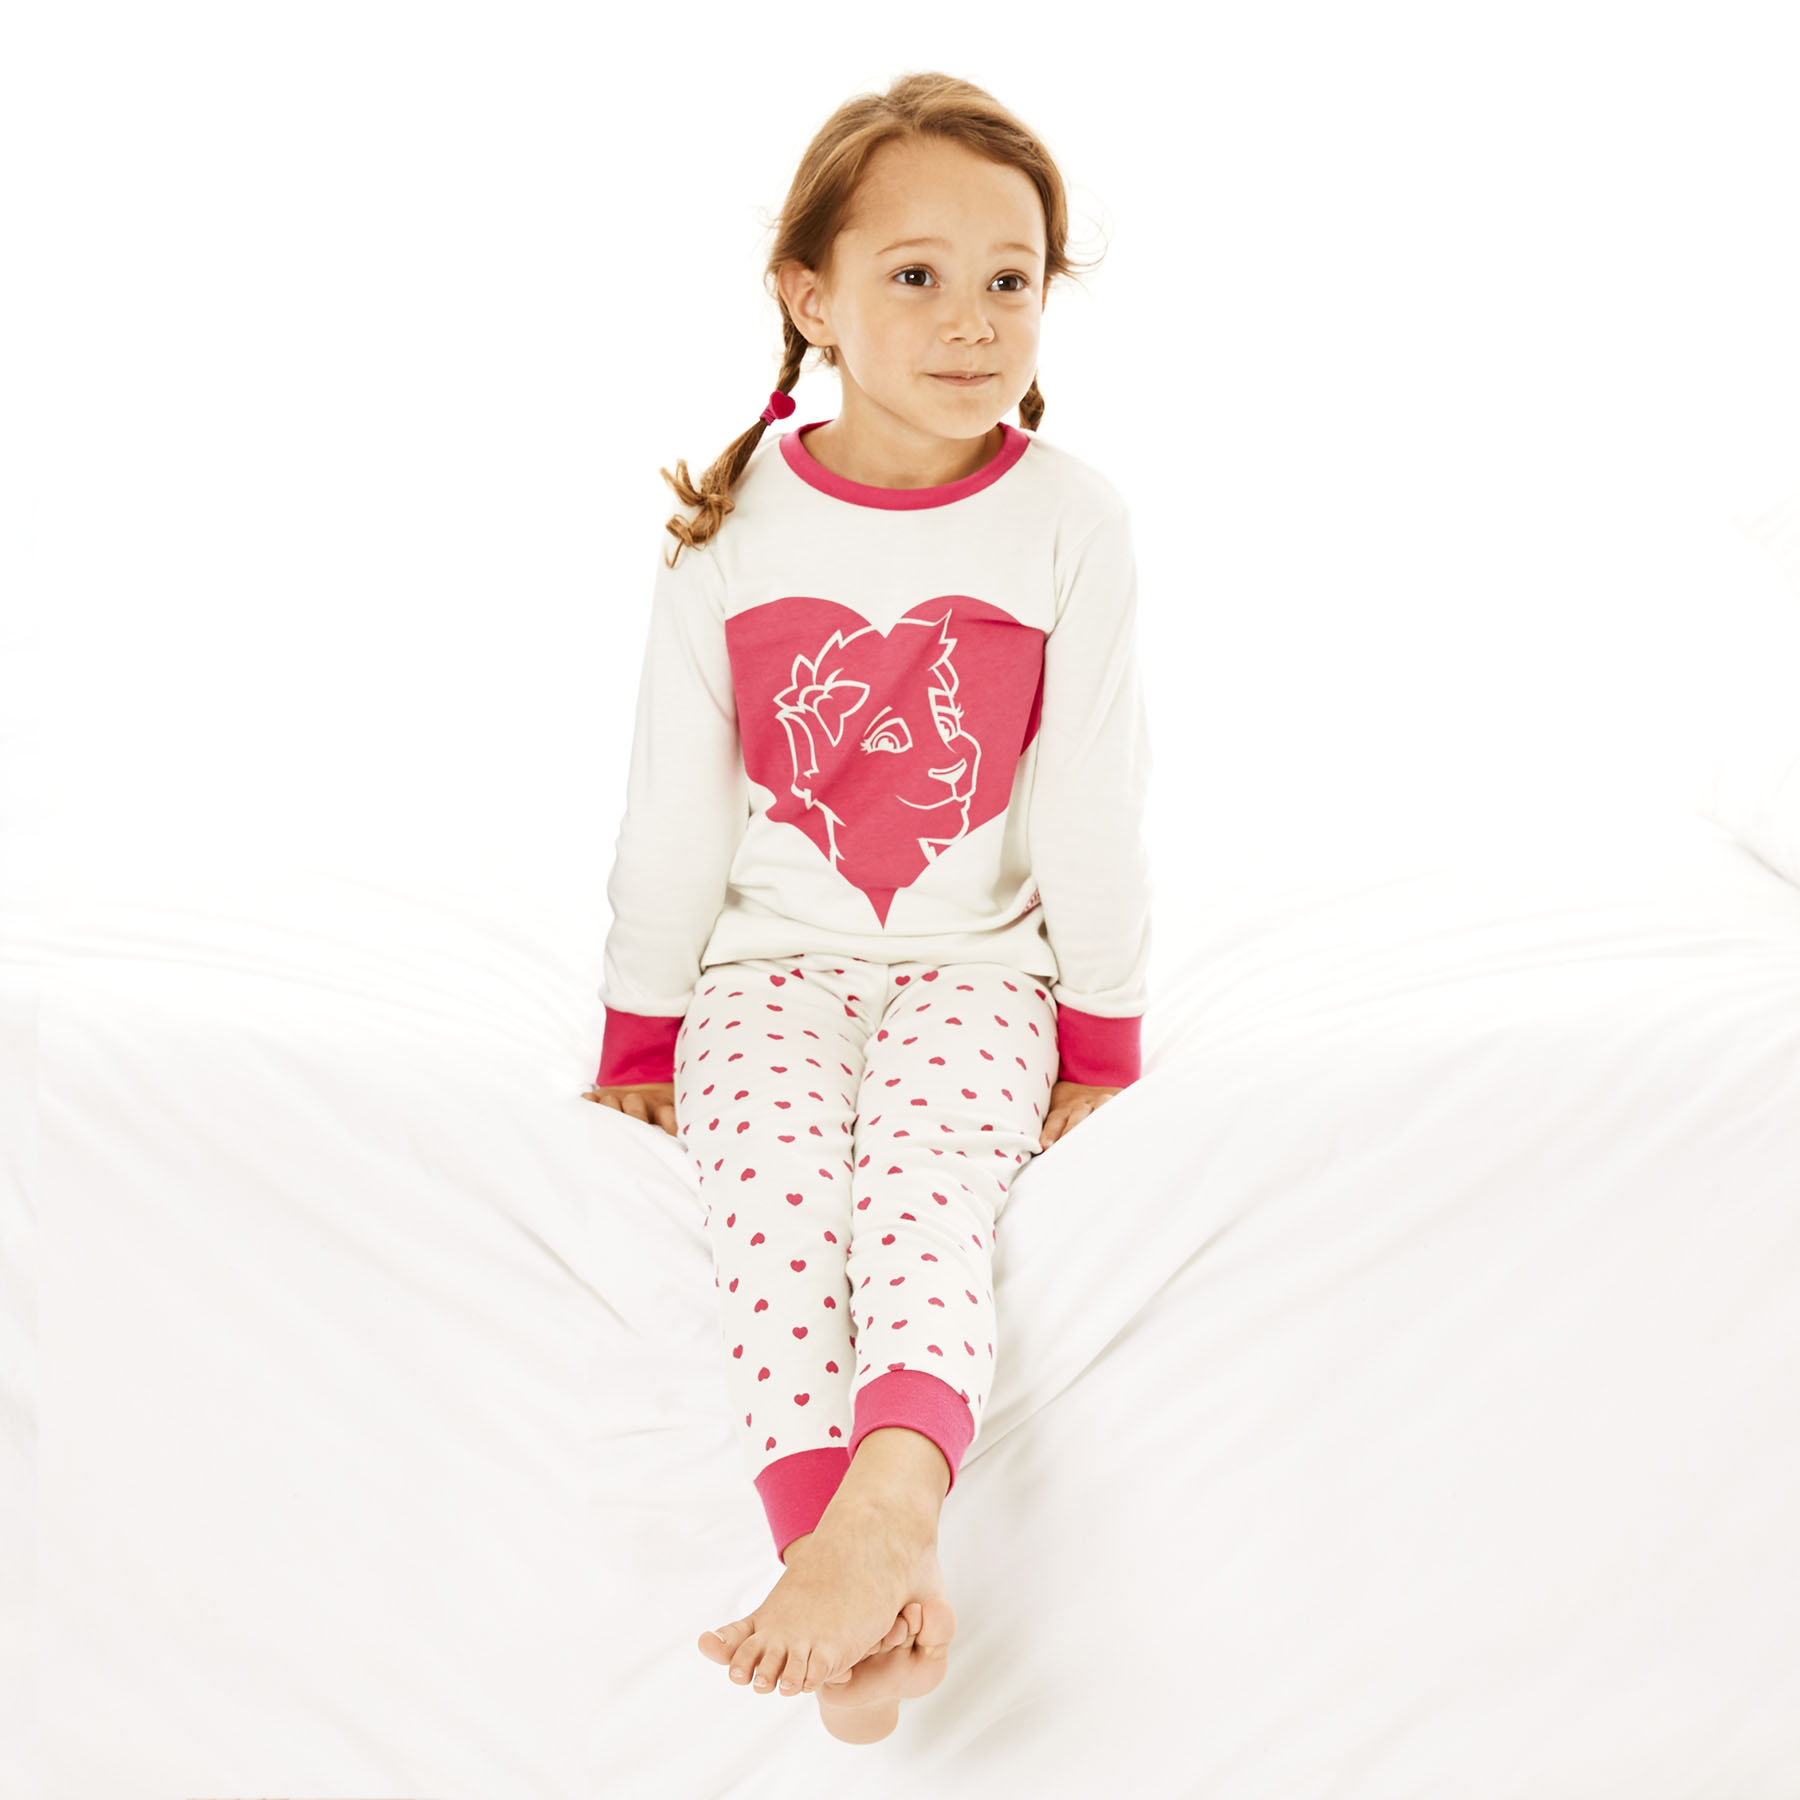 Chelsea Heart Snuggle Fit Pyjamas - Ecru/Pink - Infant Girls